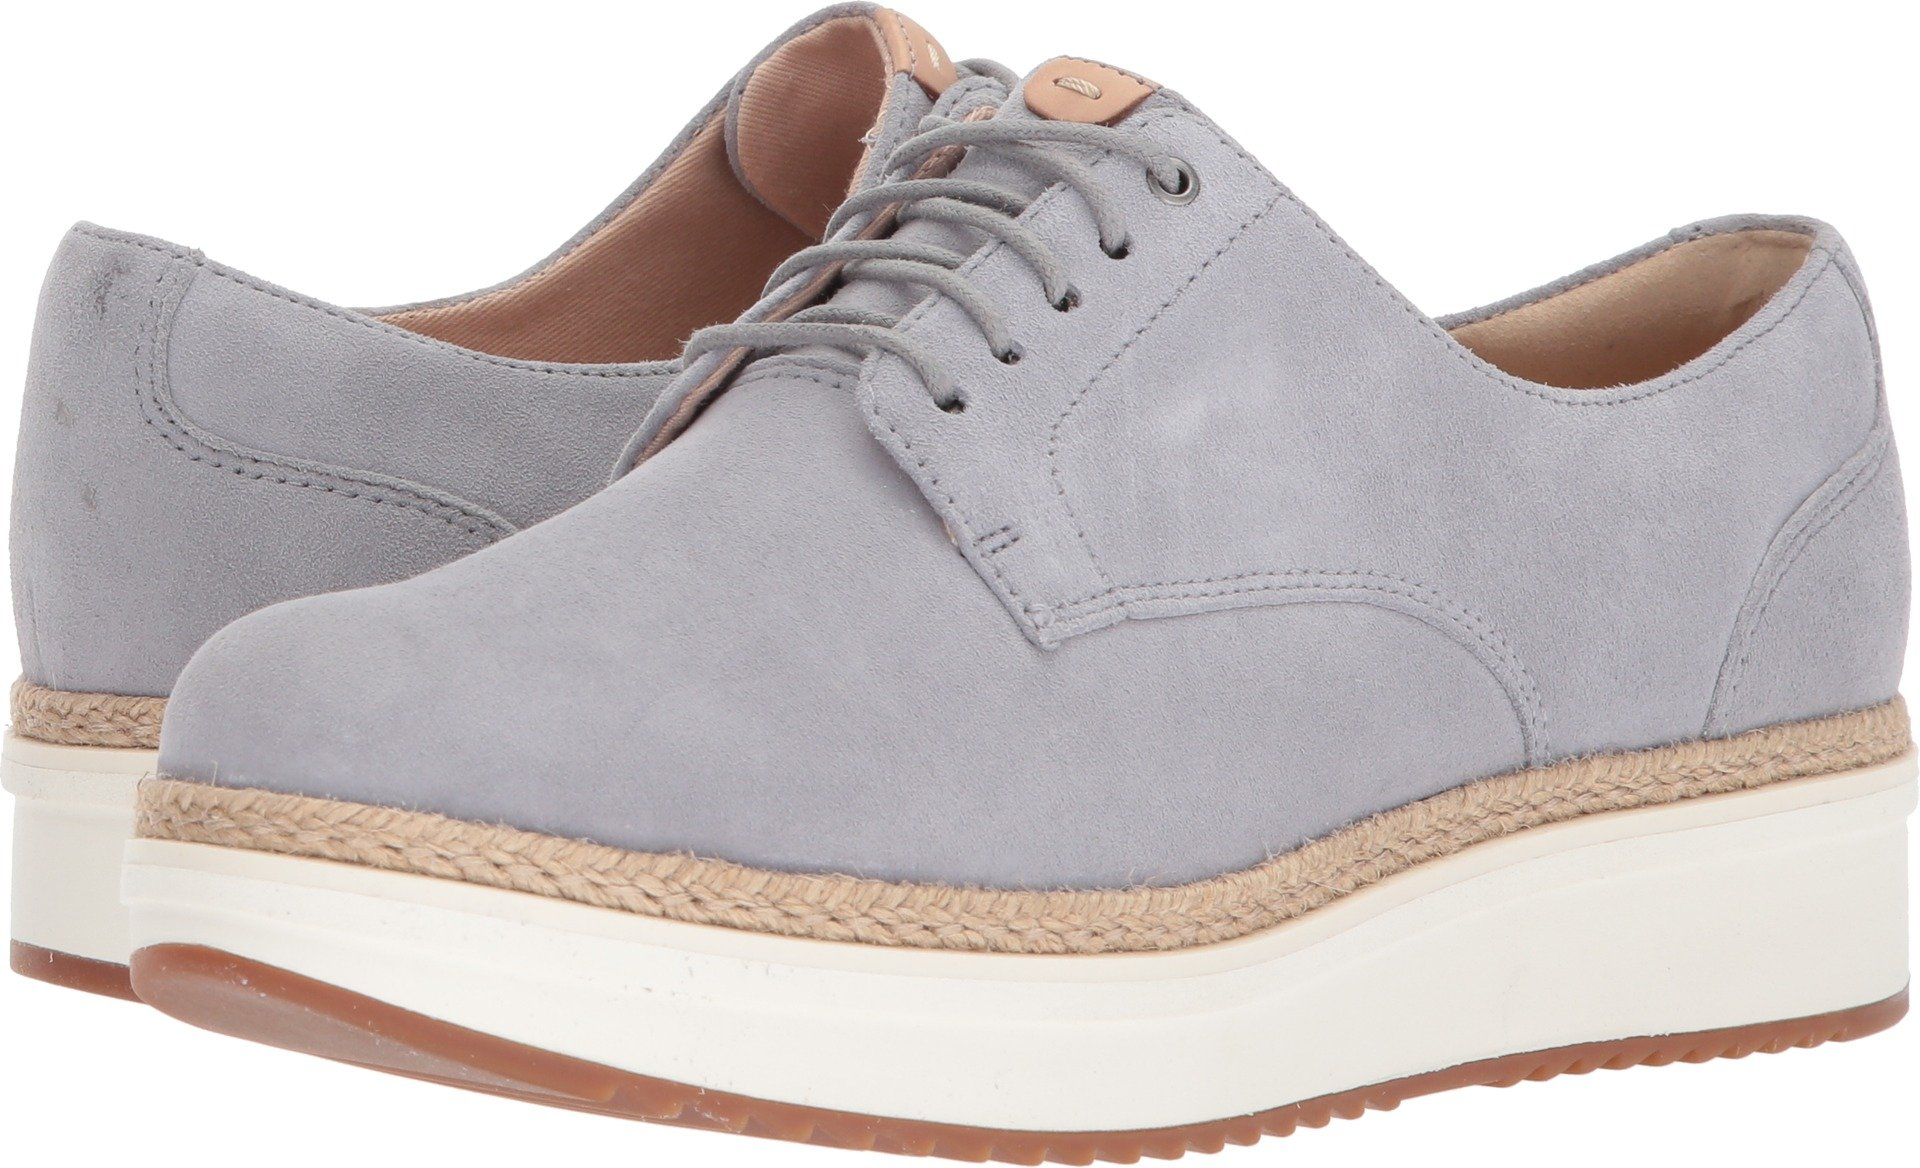 CLARKS Women's Teadale Rhea Light Grey Suede 10 B US